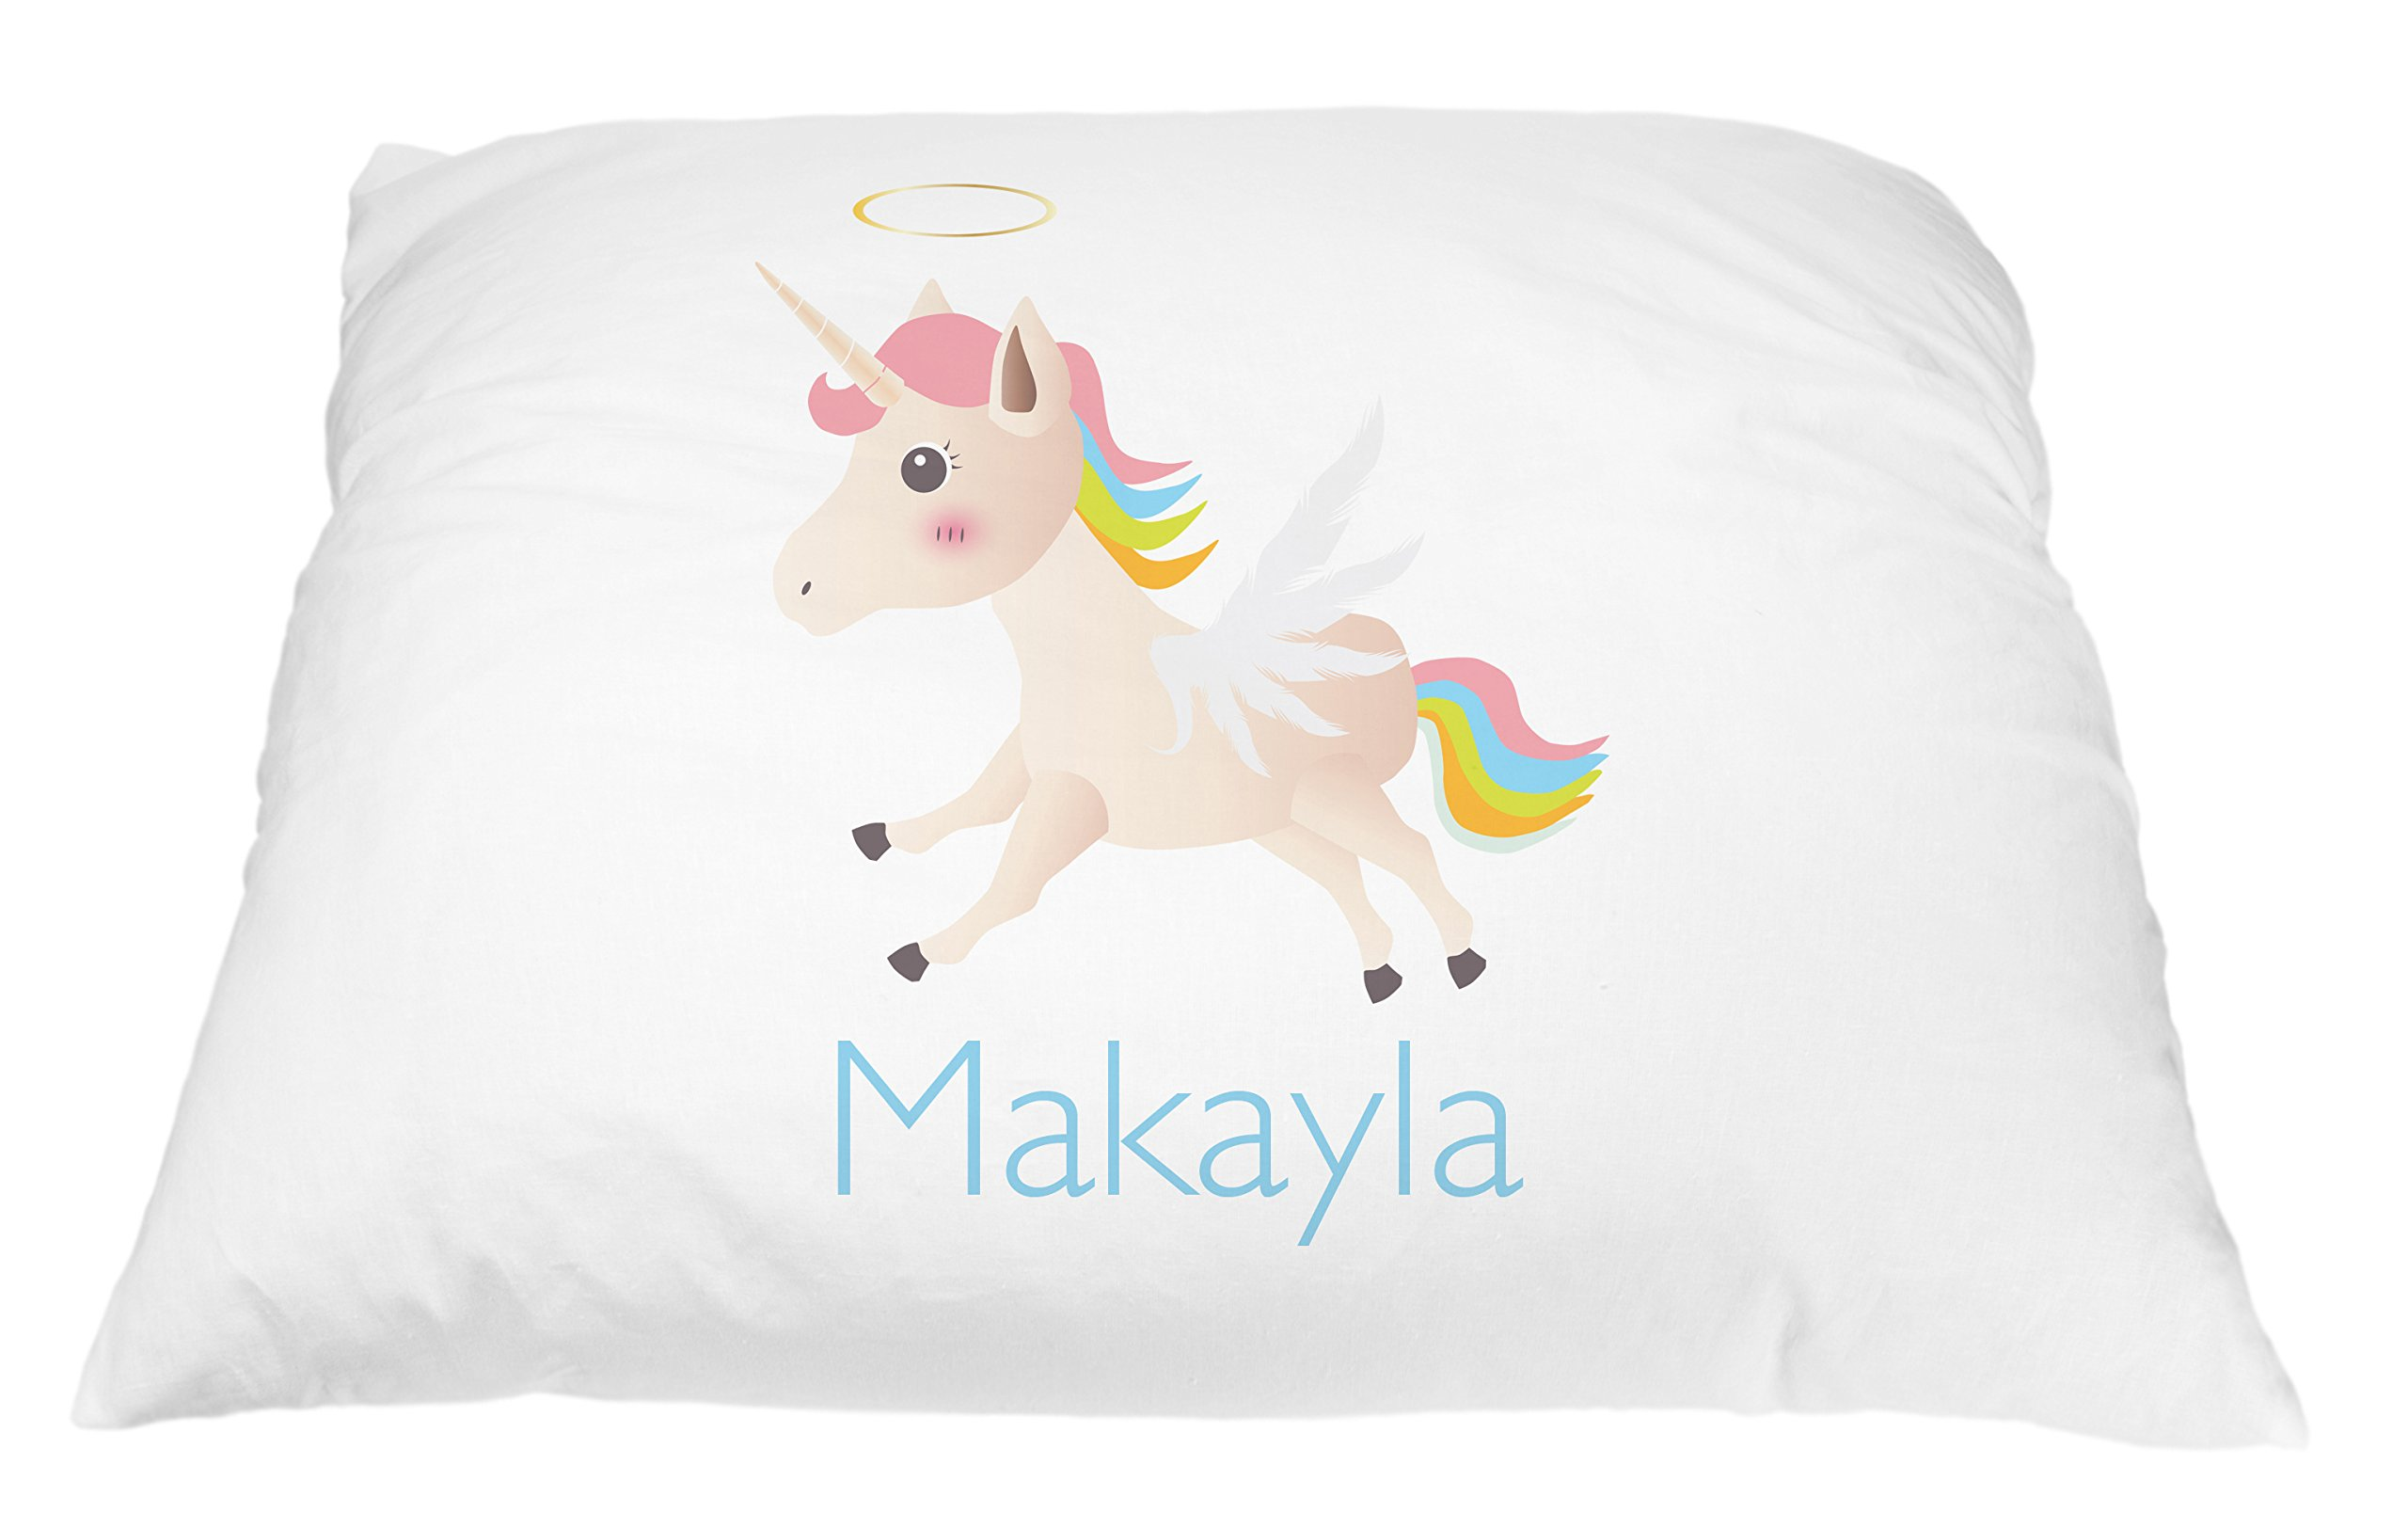 Personalized Kid's Unicorn Pillowcase Microfiber Polyester Standard 20 by 30 Inches, Custom Unicorn Pillow Cover, Personalized Pillow with Names, Personalized Gifts for Kids, Pillowcase for Girls